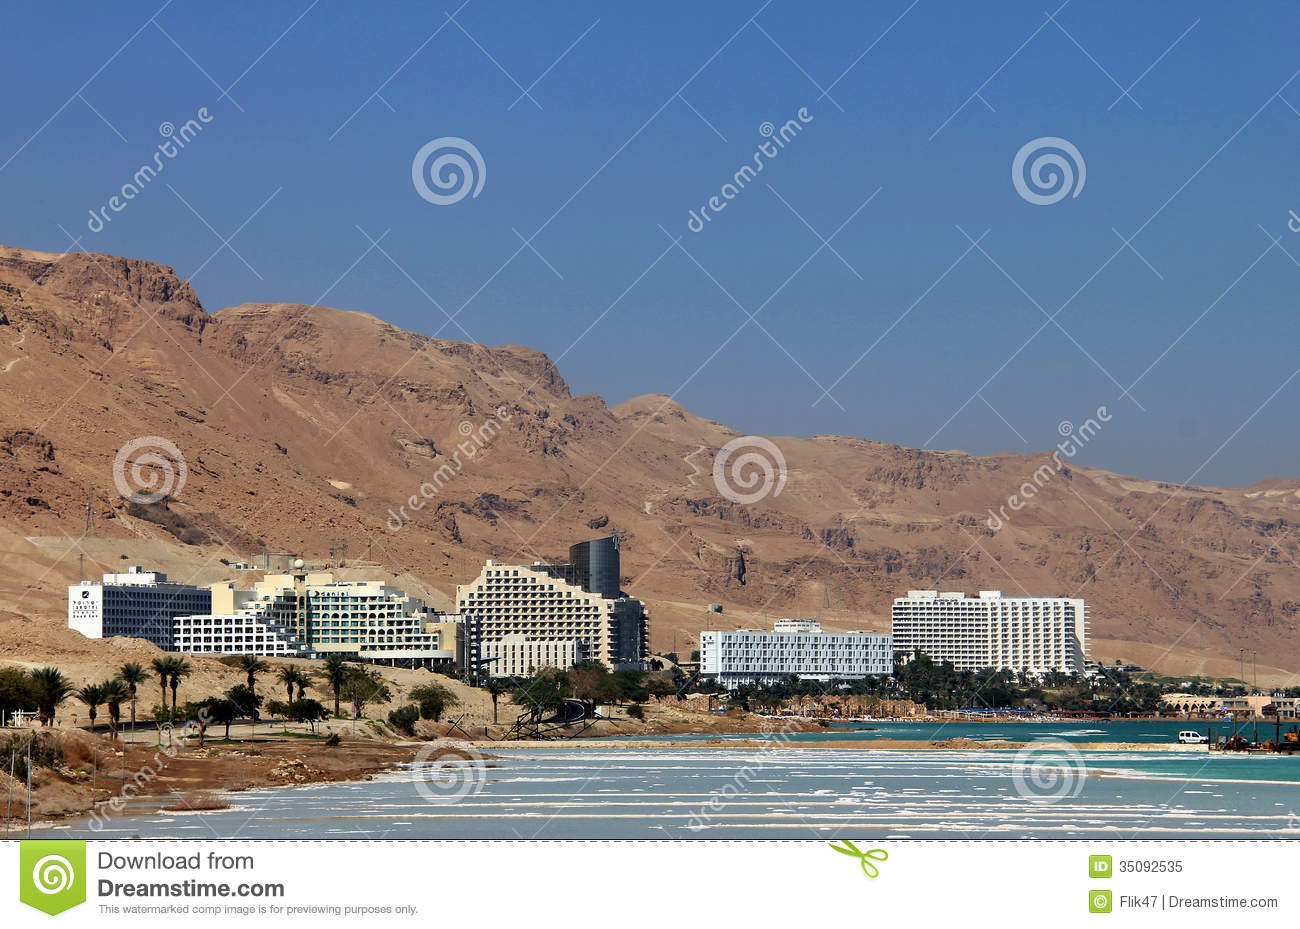 World-renowned health resort complex on the Dead sea